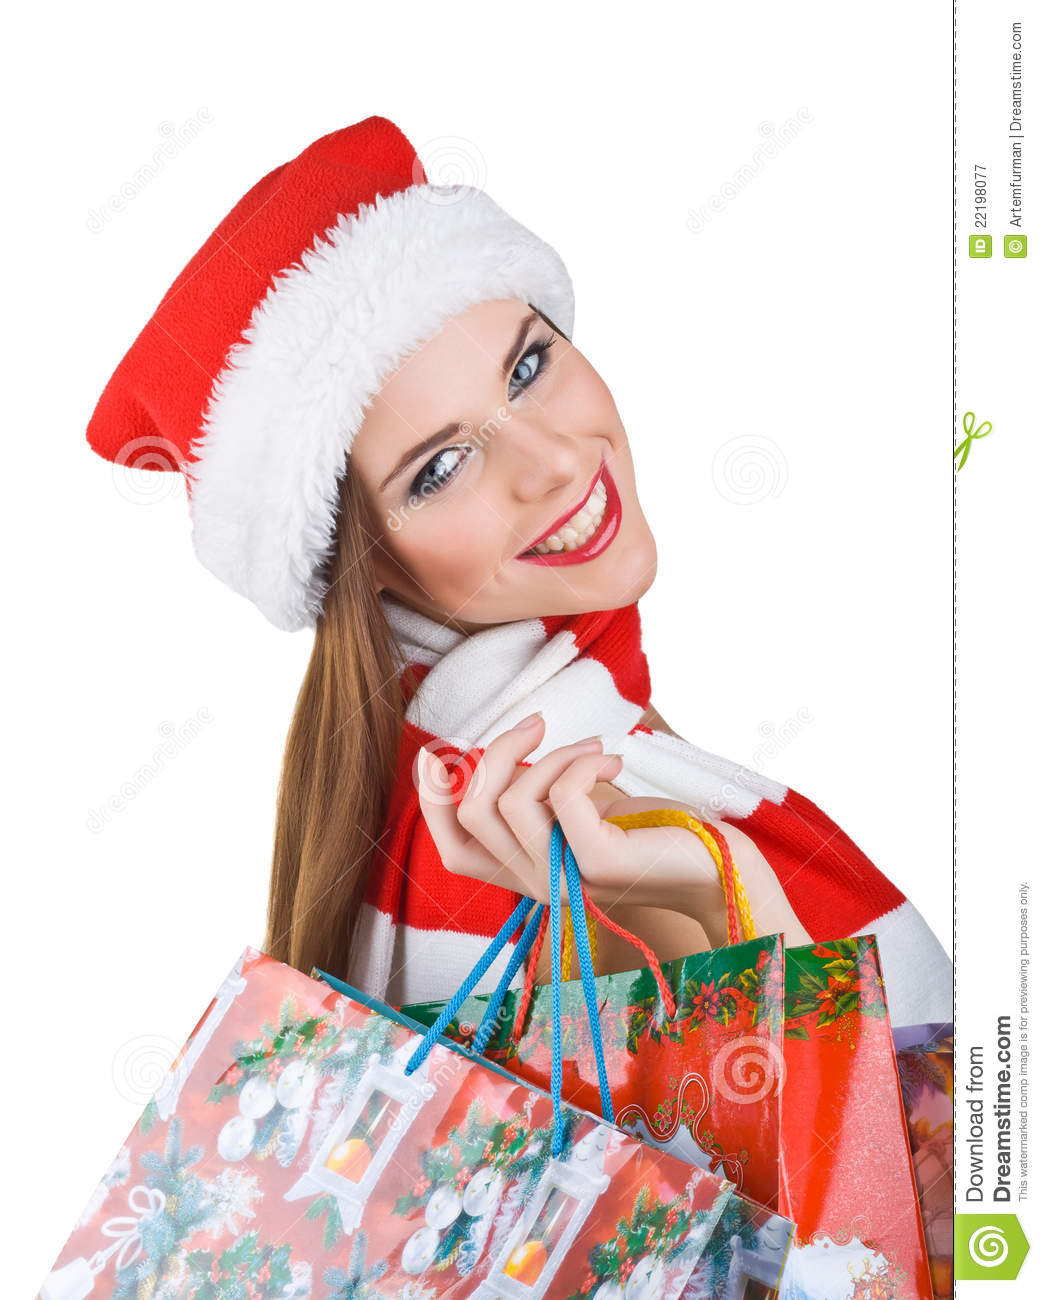 Woman In Christmas Outfit With Shopping Bags Royalty Free